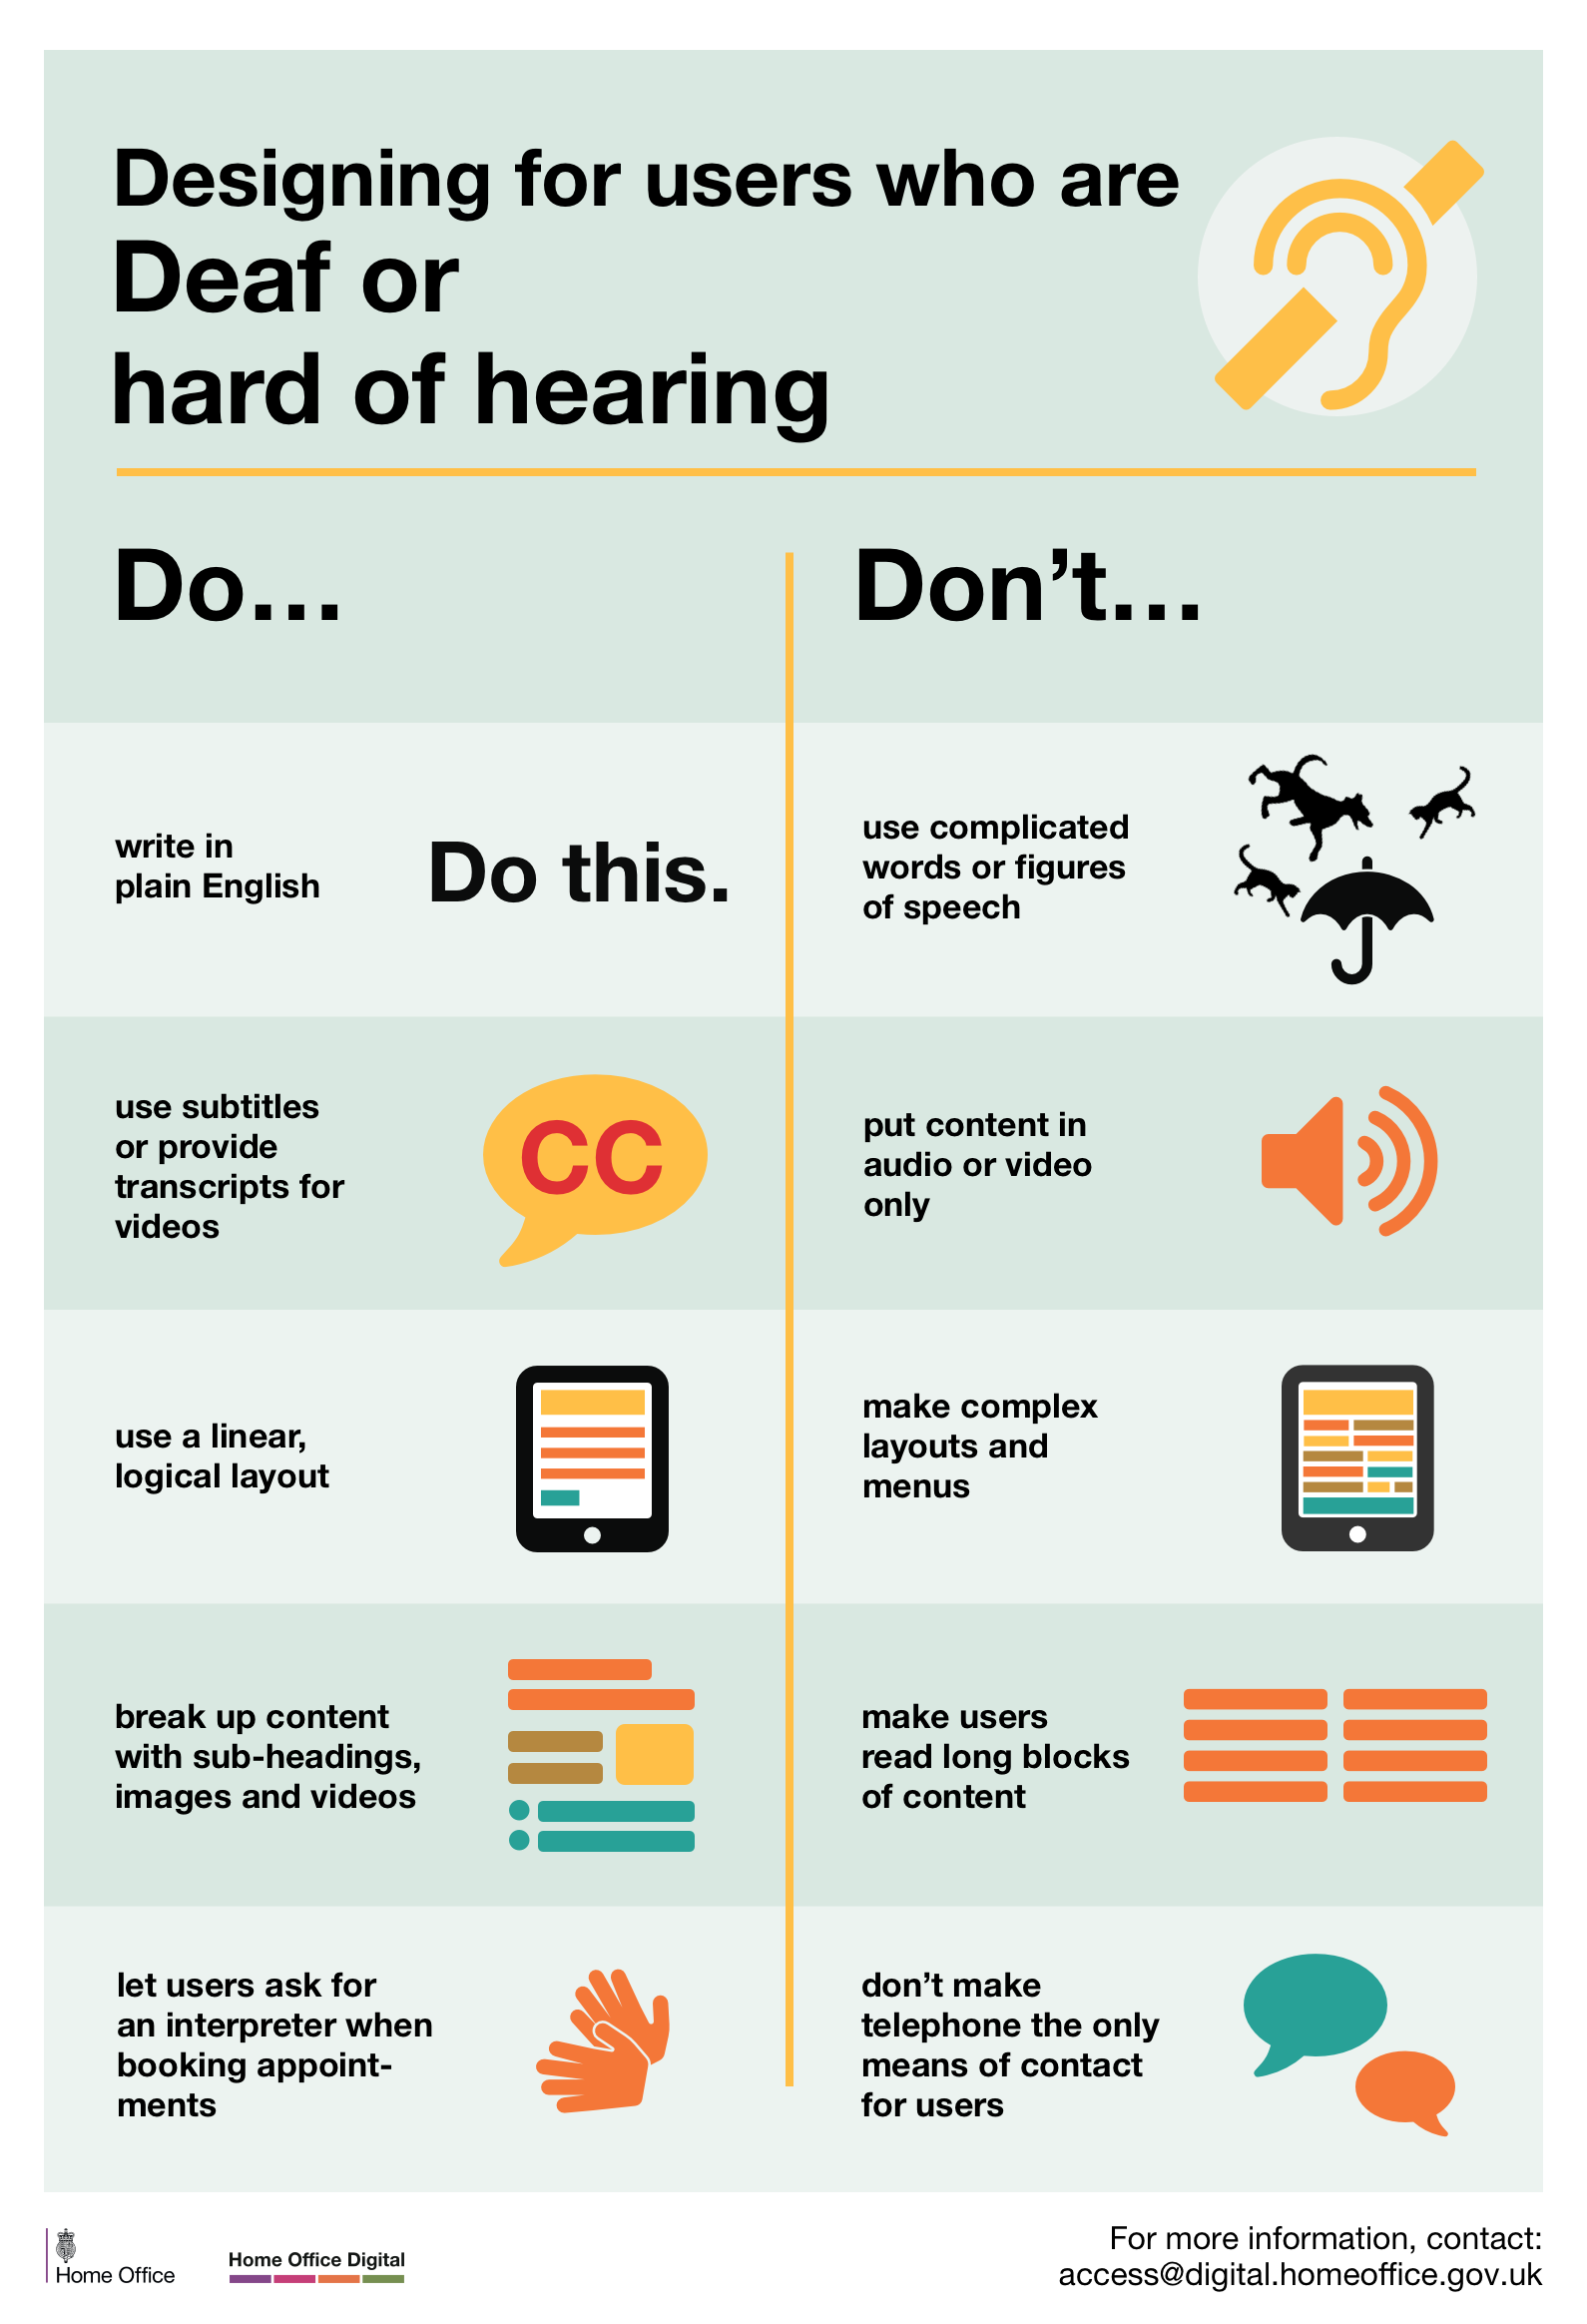 a poster with dos and donts on how to design graphics for the deaf or hard of hearing, which include info that has nothing to do with the auditory system and comes across as saying the deaf are intellectually disabled.